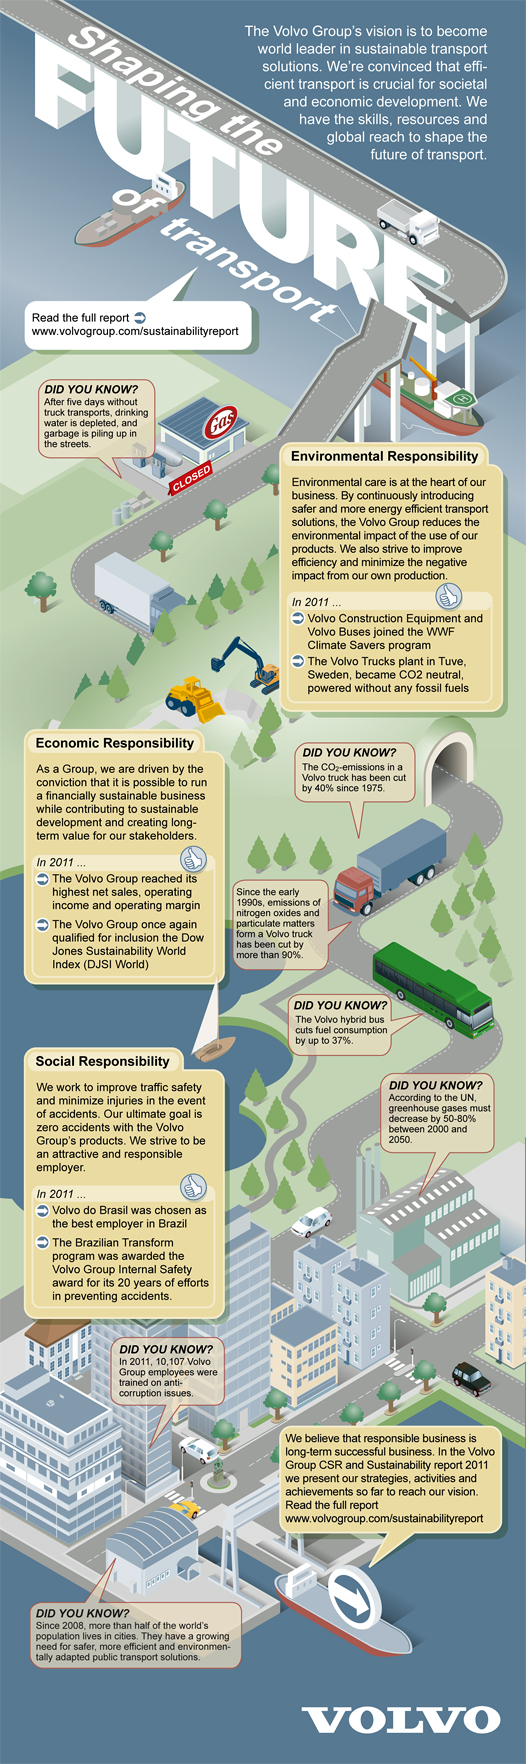 The Volvo Group CSR and Sustainability Report 2011 – infographic